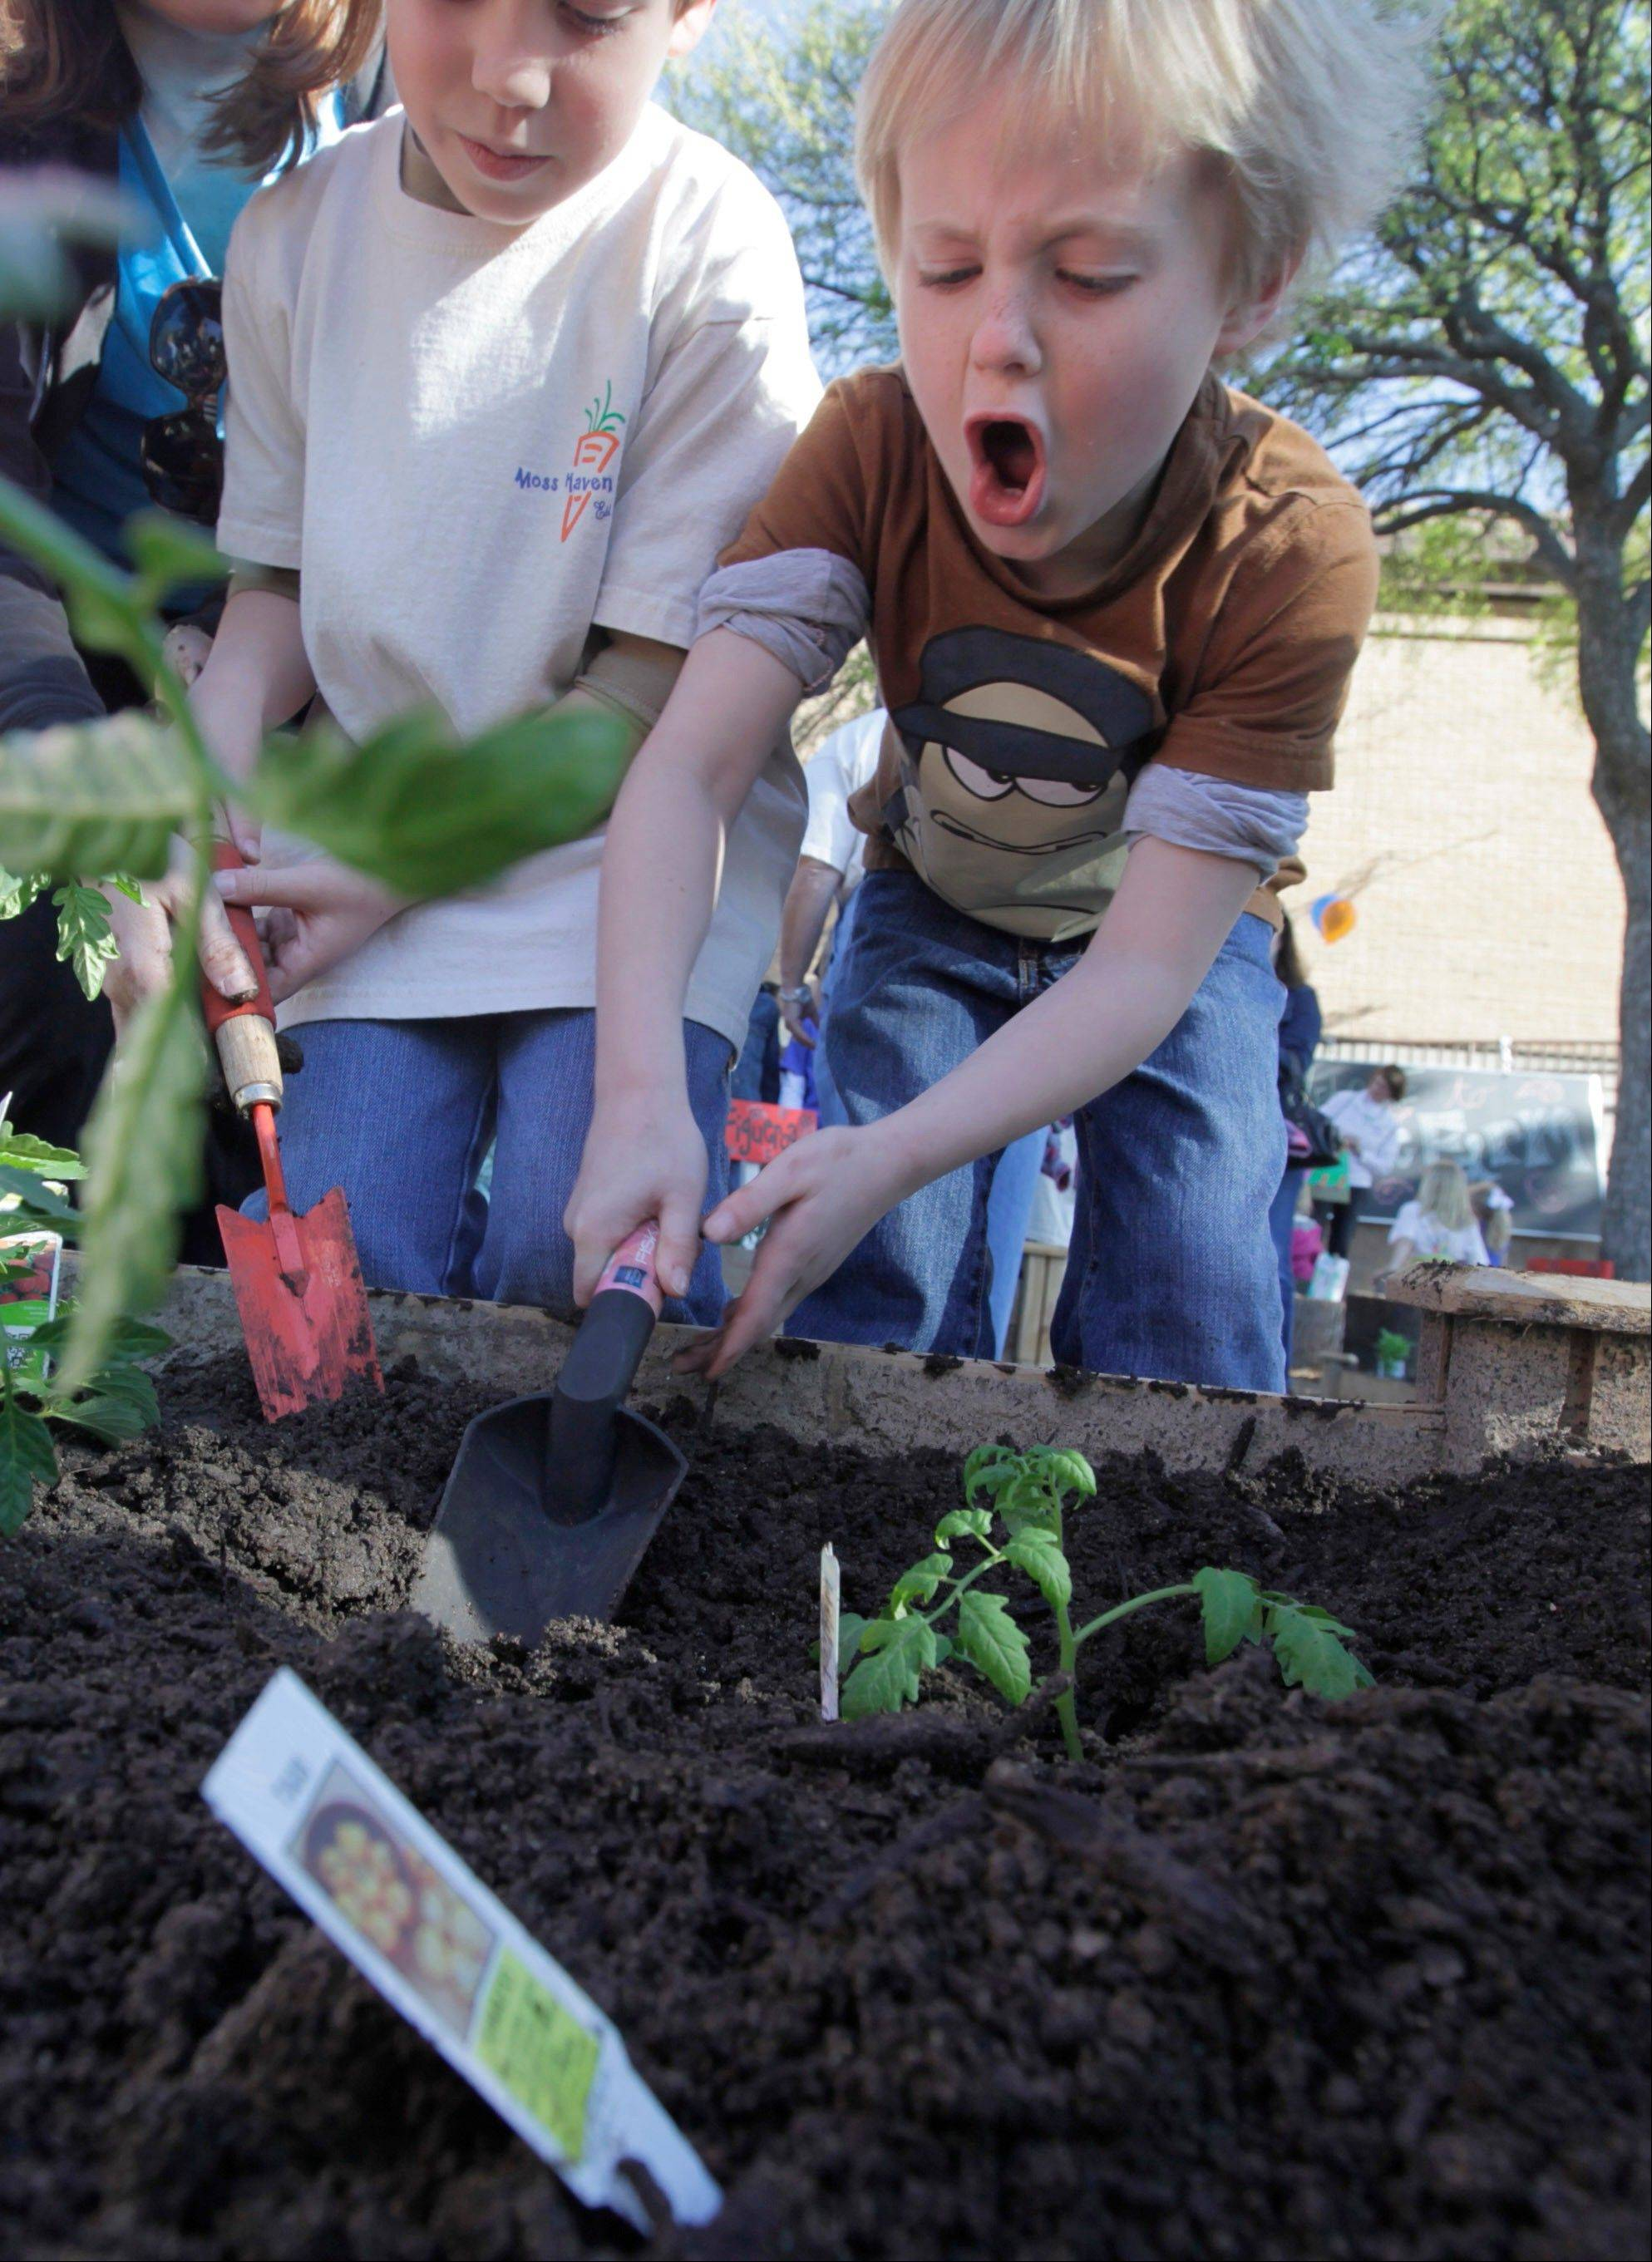 Elementary students plant vegetables in a garden at Moss Haven Elementary school in Dallas, Texas. Gardens planted in schoolyards nationally are intended to encourage healthier eating, and also teach young students about the environment, science, teamwork, math and leadership.